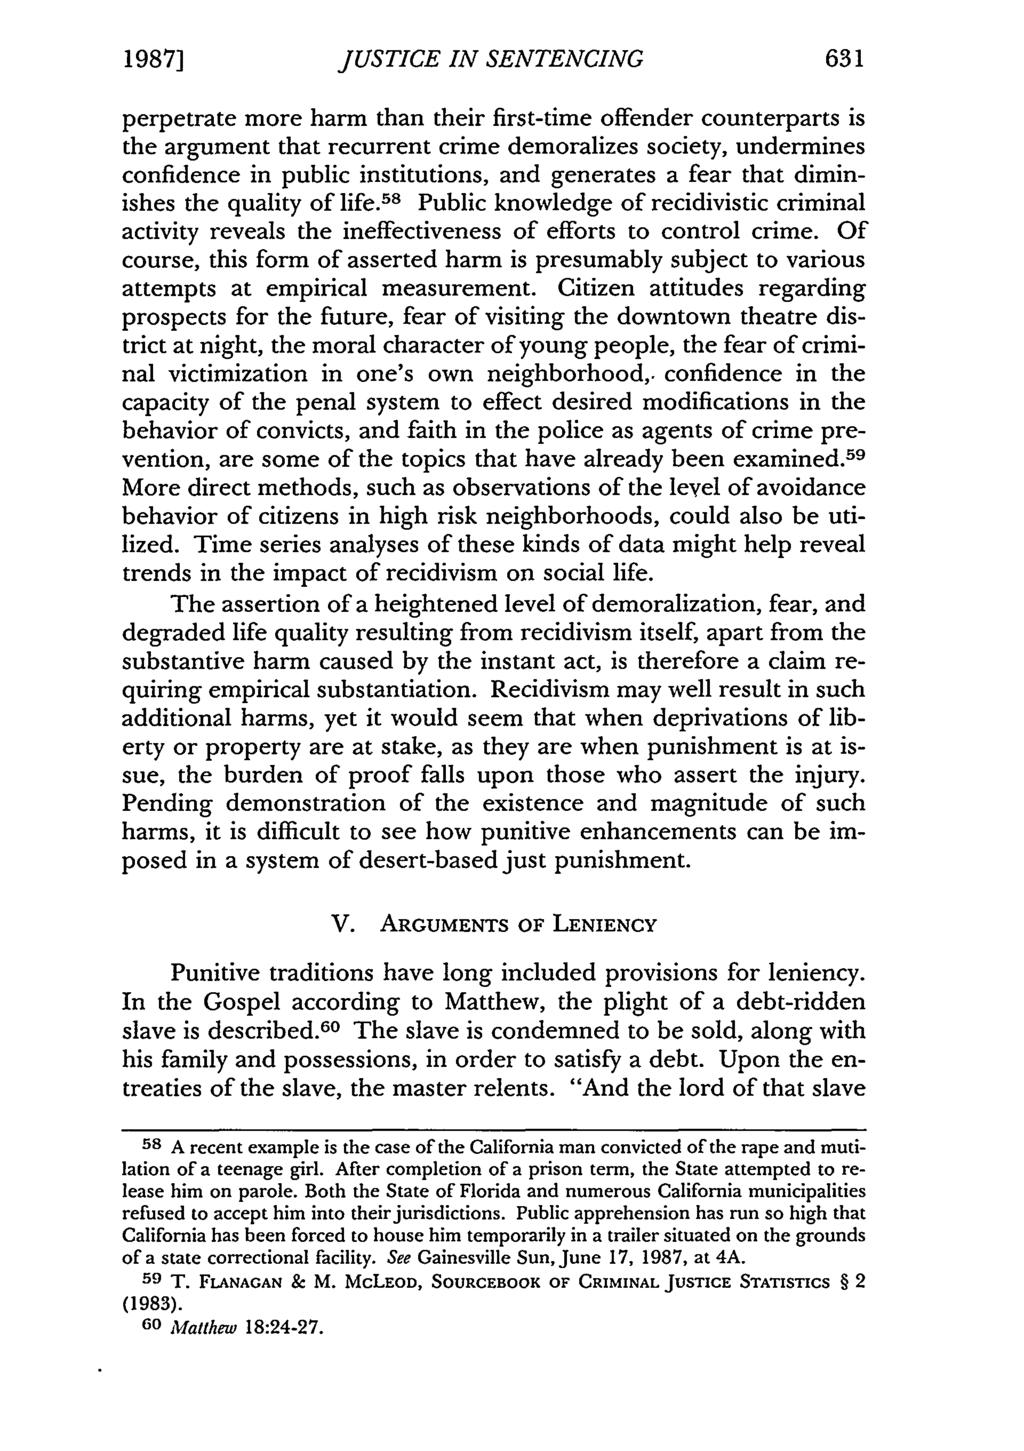 1987] JUSTICE IN SENTENCING perpetrate more harm than their first-time offender counterparts is the argument that recurrent crime demoralizes society, undermines confidence in public institutions,